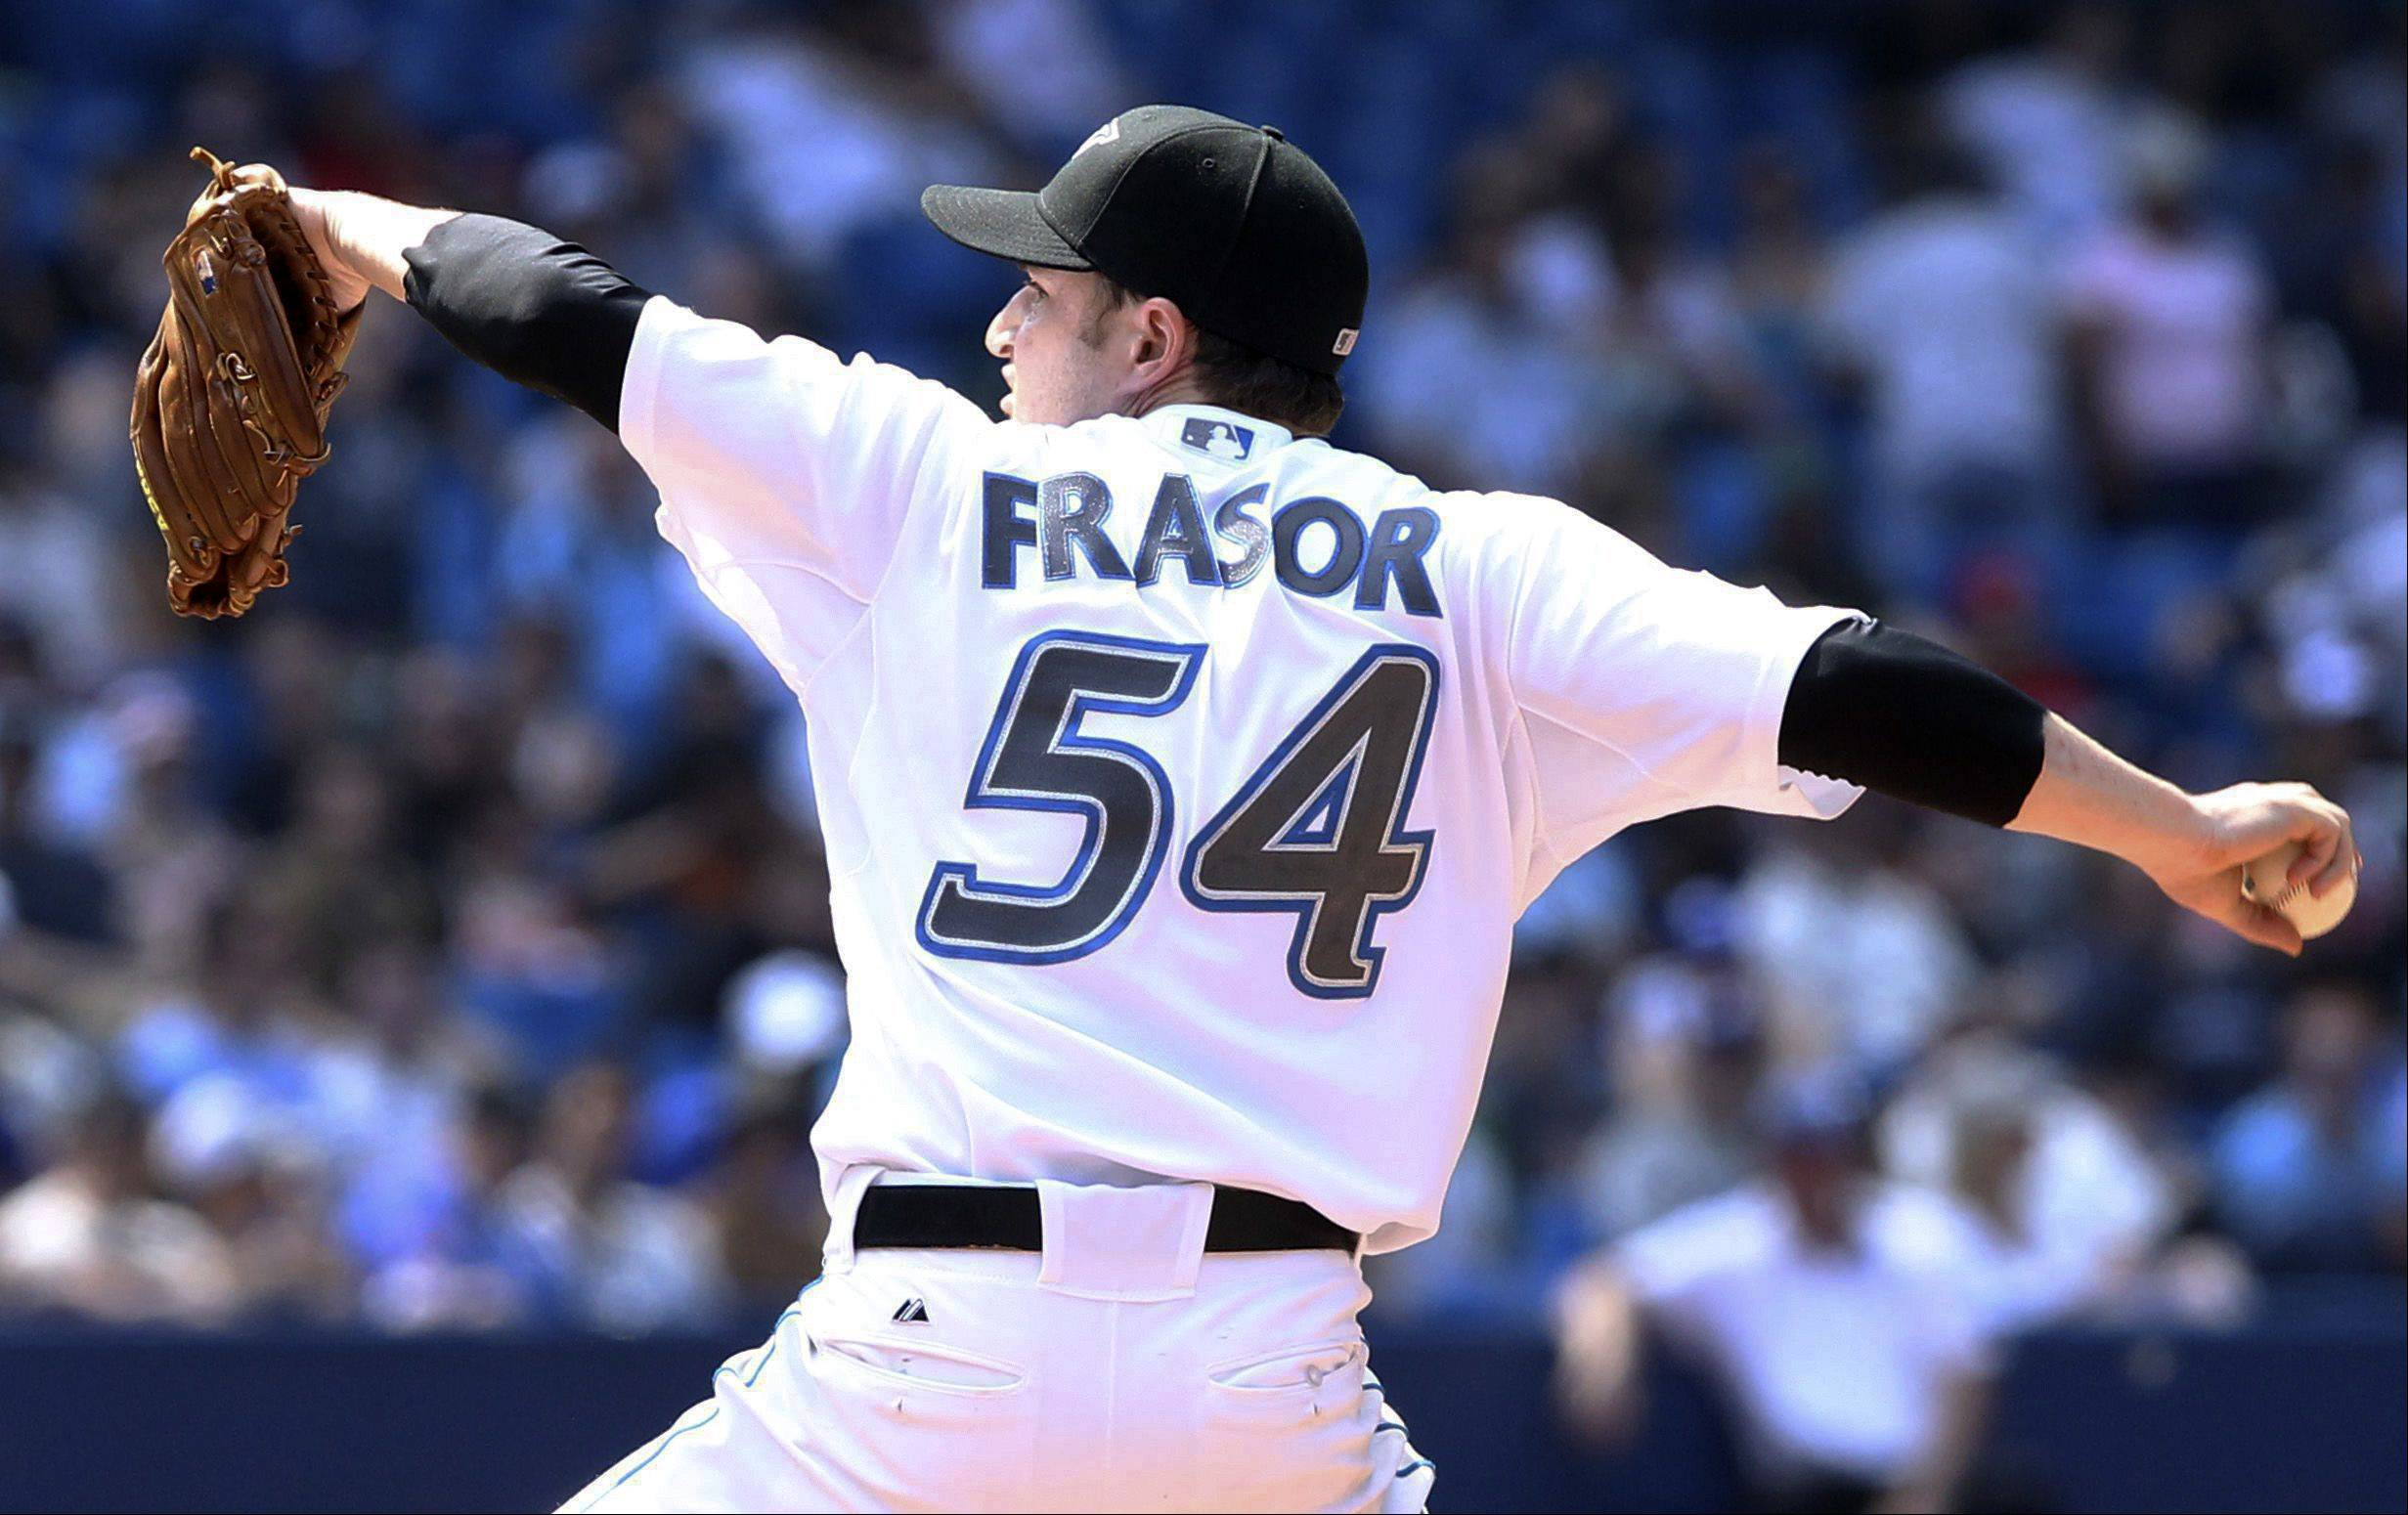 Toronto Blue Jays relief pitcher Jason Frasor was 2-1 with a 2.98 ERA in 44 relief appearances with Toronto this season. The Sox acquired the 33-year-old Frasor, who lives in Oak Forest and pitched at Southern Illinois University.